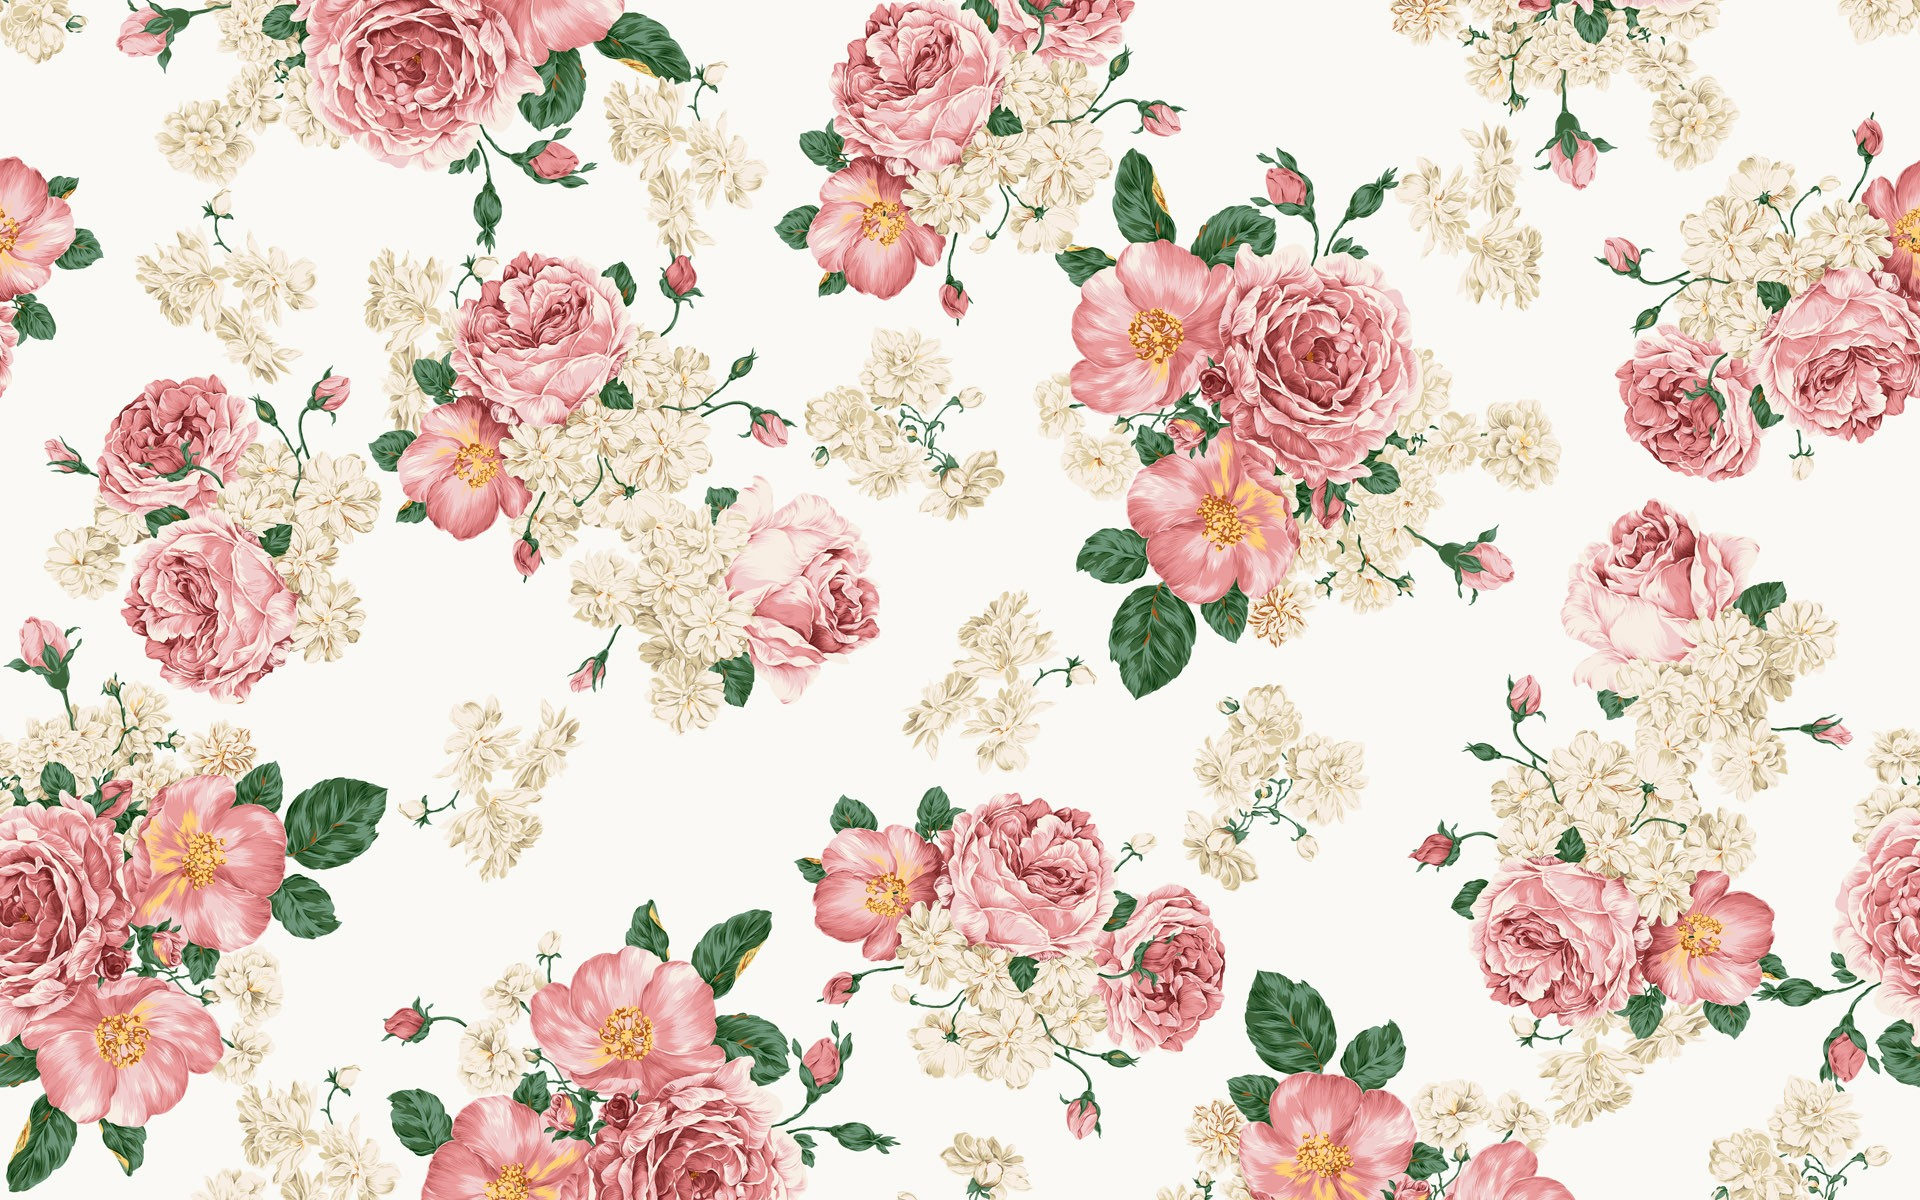 Beautiful Disney Wallpaper search results - Page 1481 ... Vintage Flower Backgrounds Tumblr